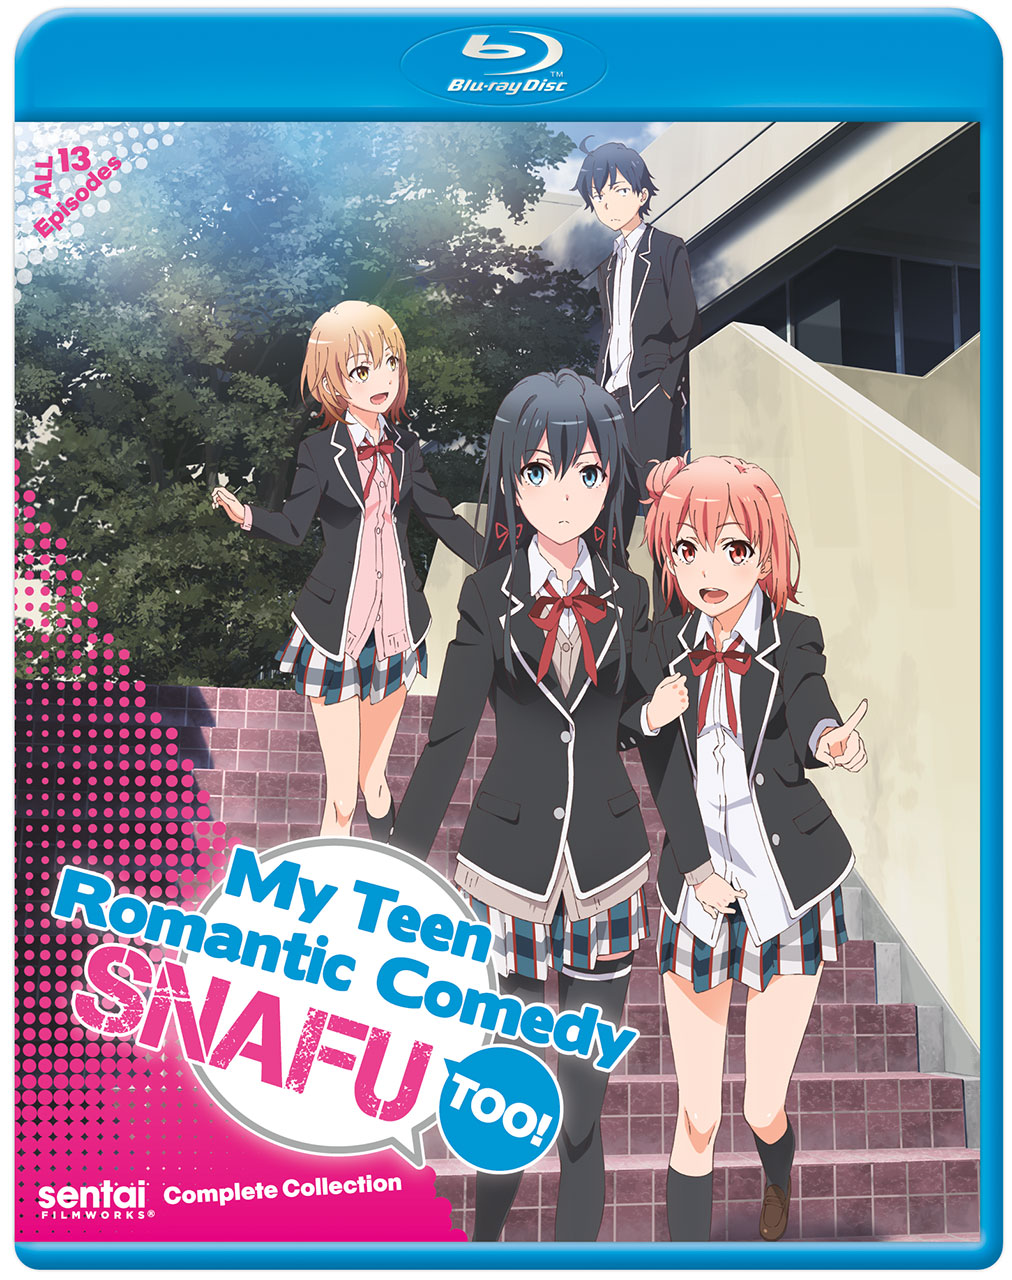 My Teen Romantic Comedy SNAFU TOO! Blu-ray 814131017697